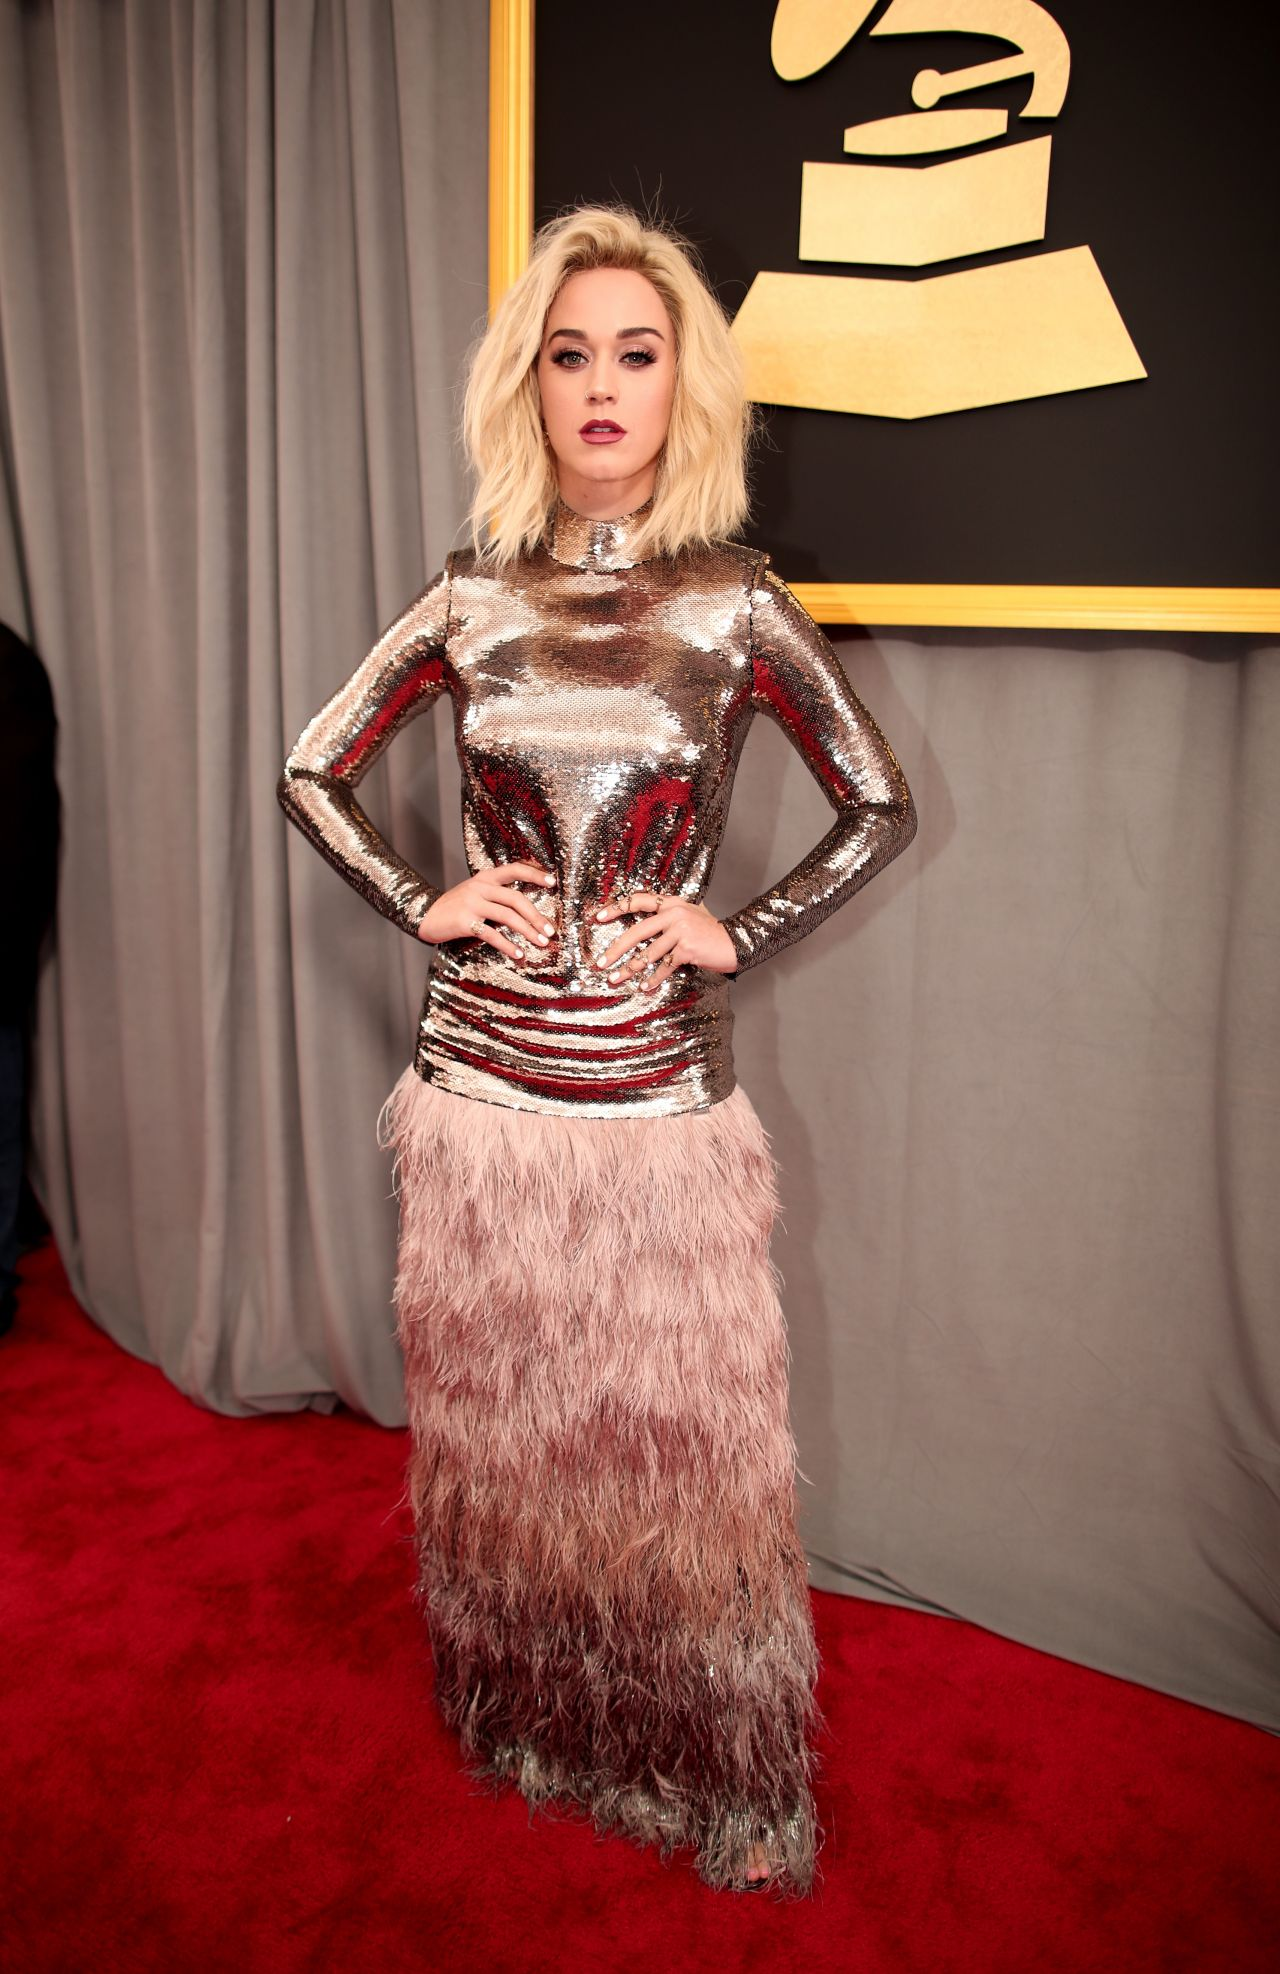 katy perry on red carpet � grammy awards in los angeles 2